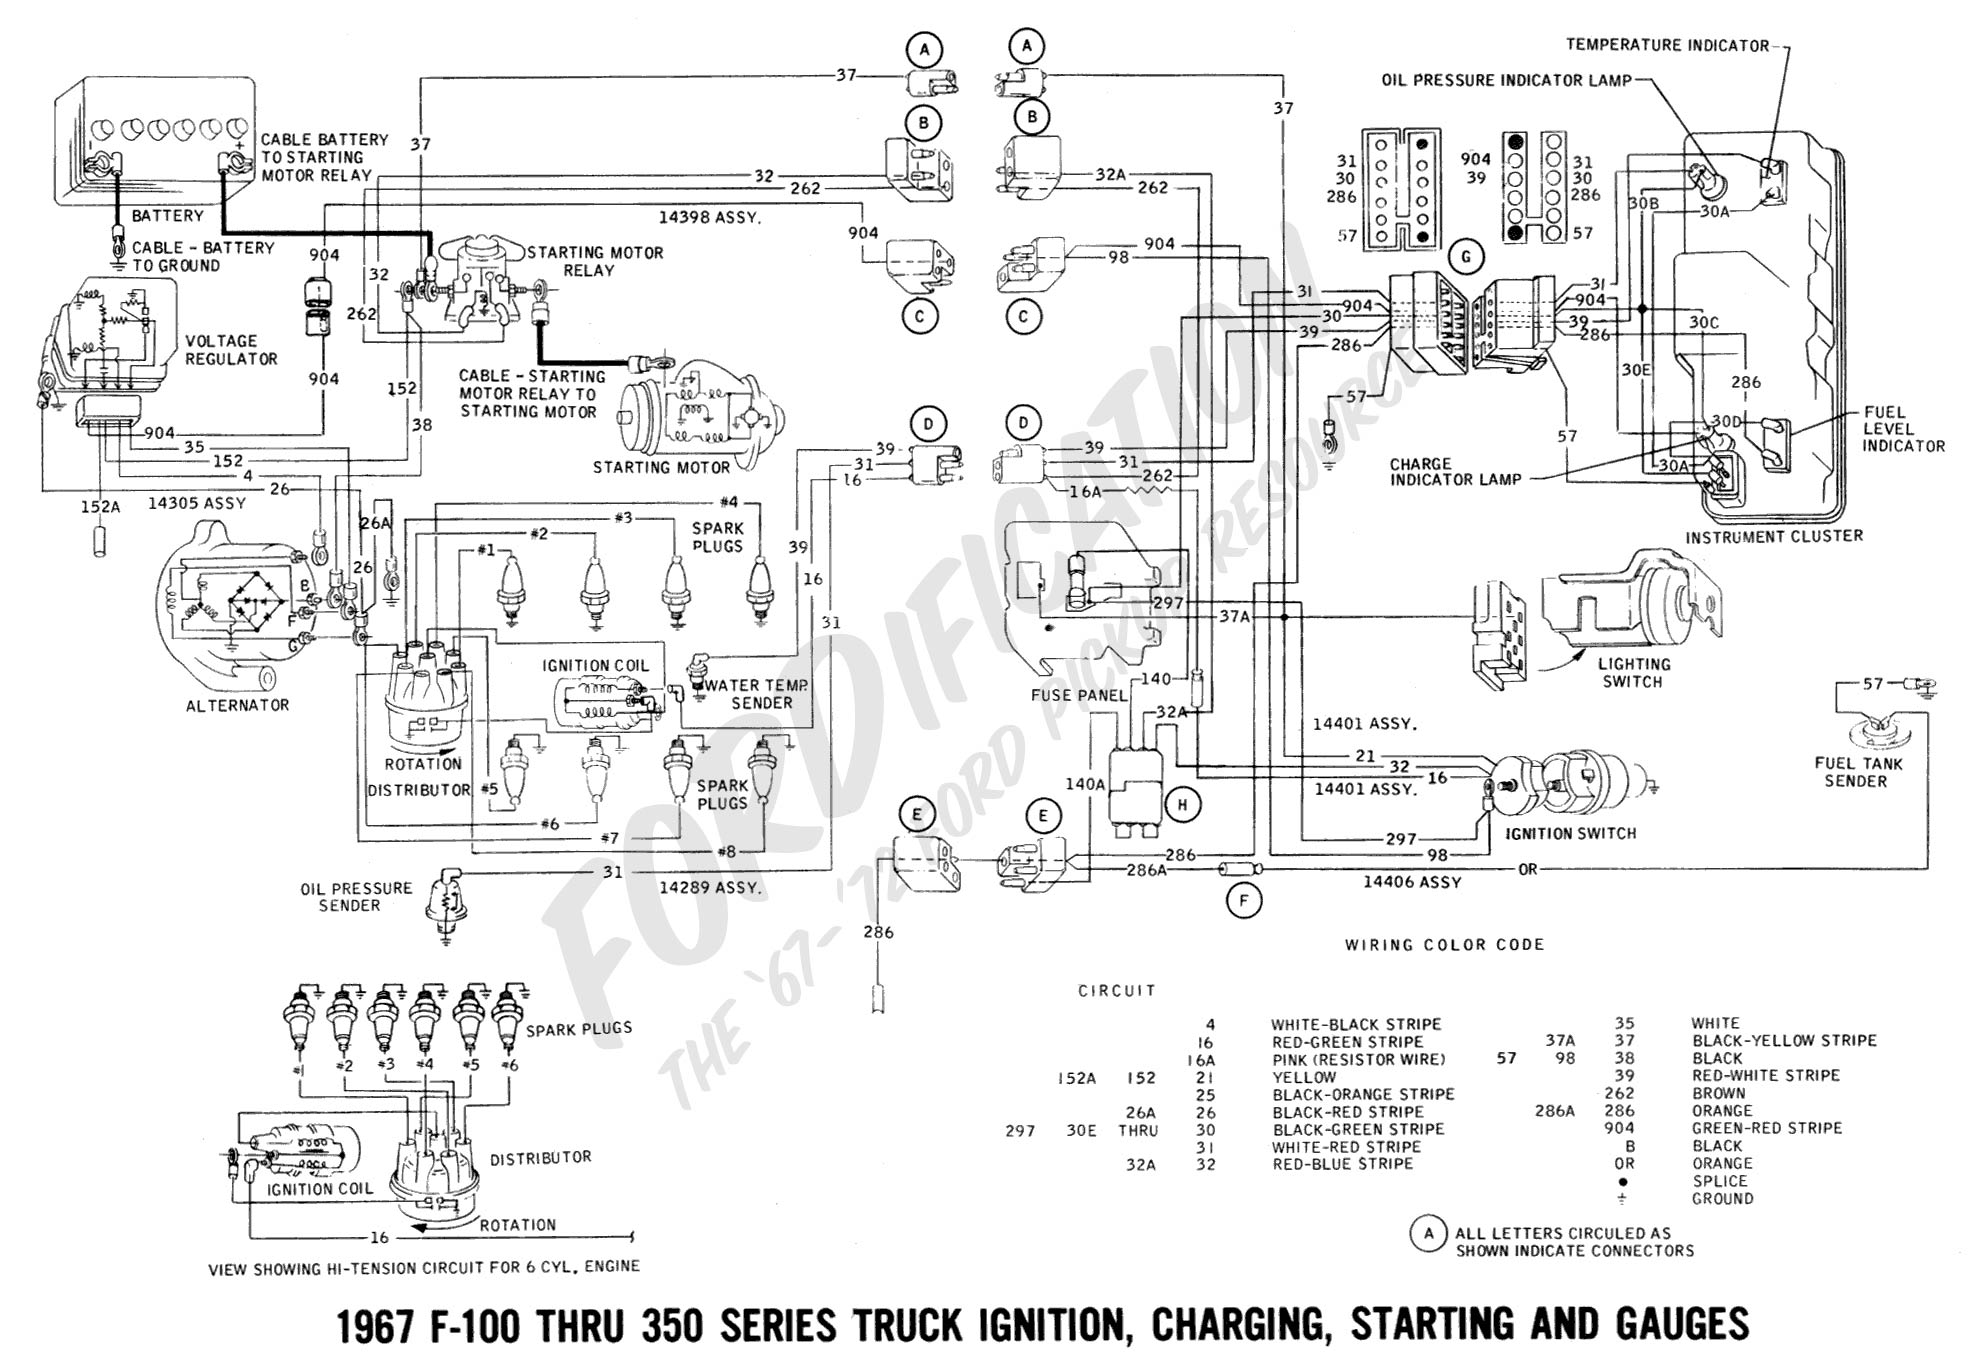 Enjoyable 1968 Ford F100 Wiring Harness Basic Electronics Wiring Diagram Wiring Cloud Picalendutblikvittorg